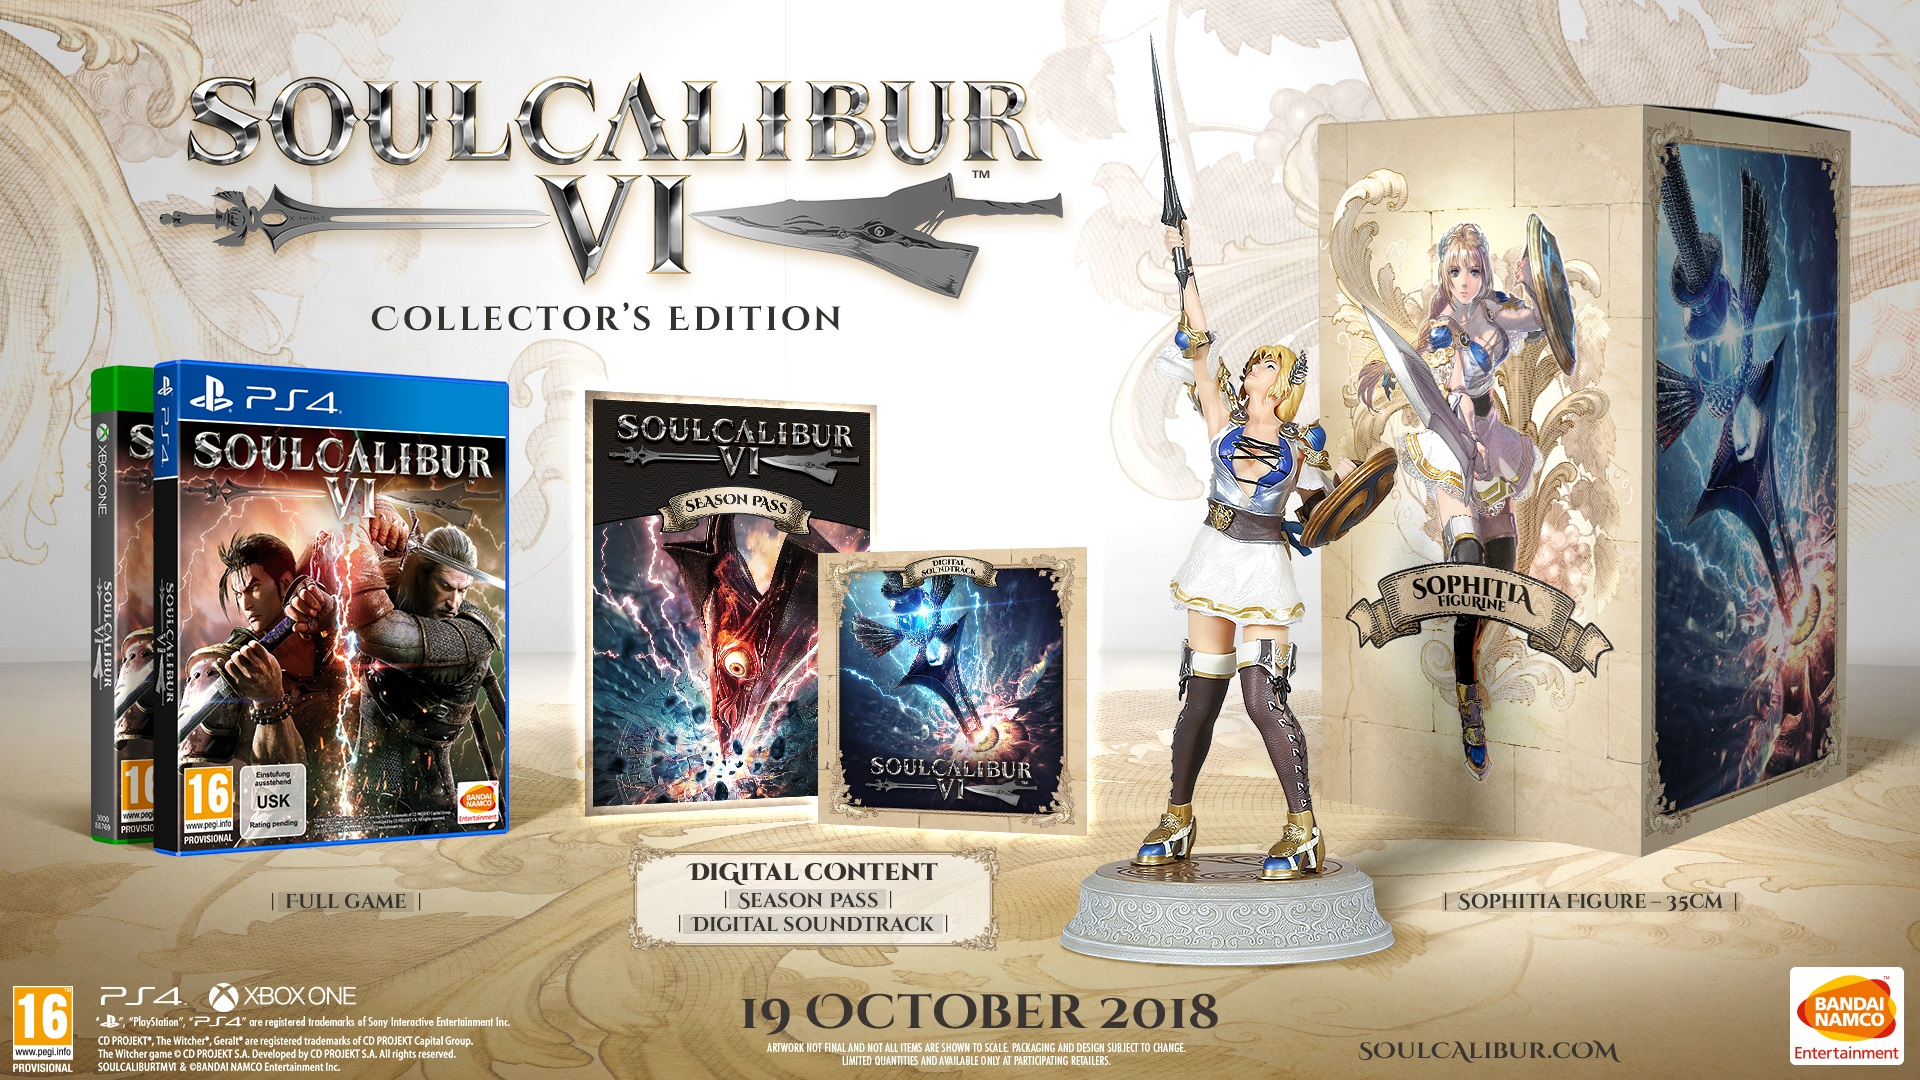 Soul Calibur 6 Release Date Announced for October 19th